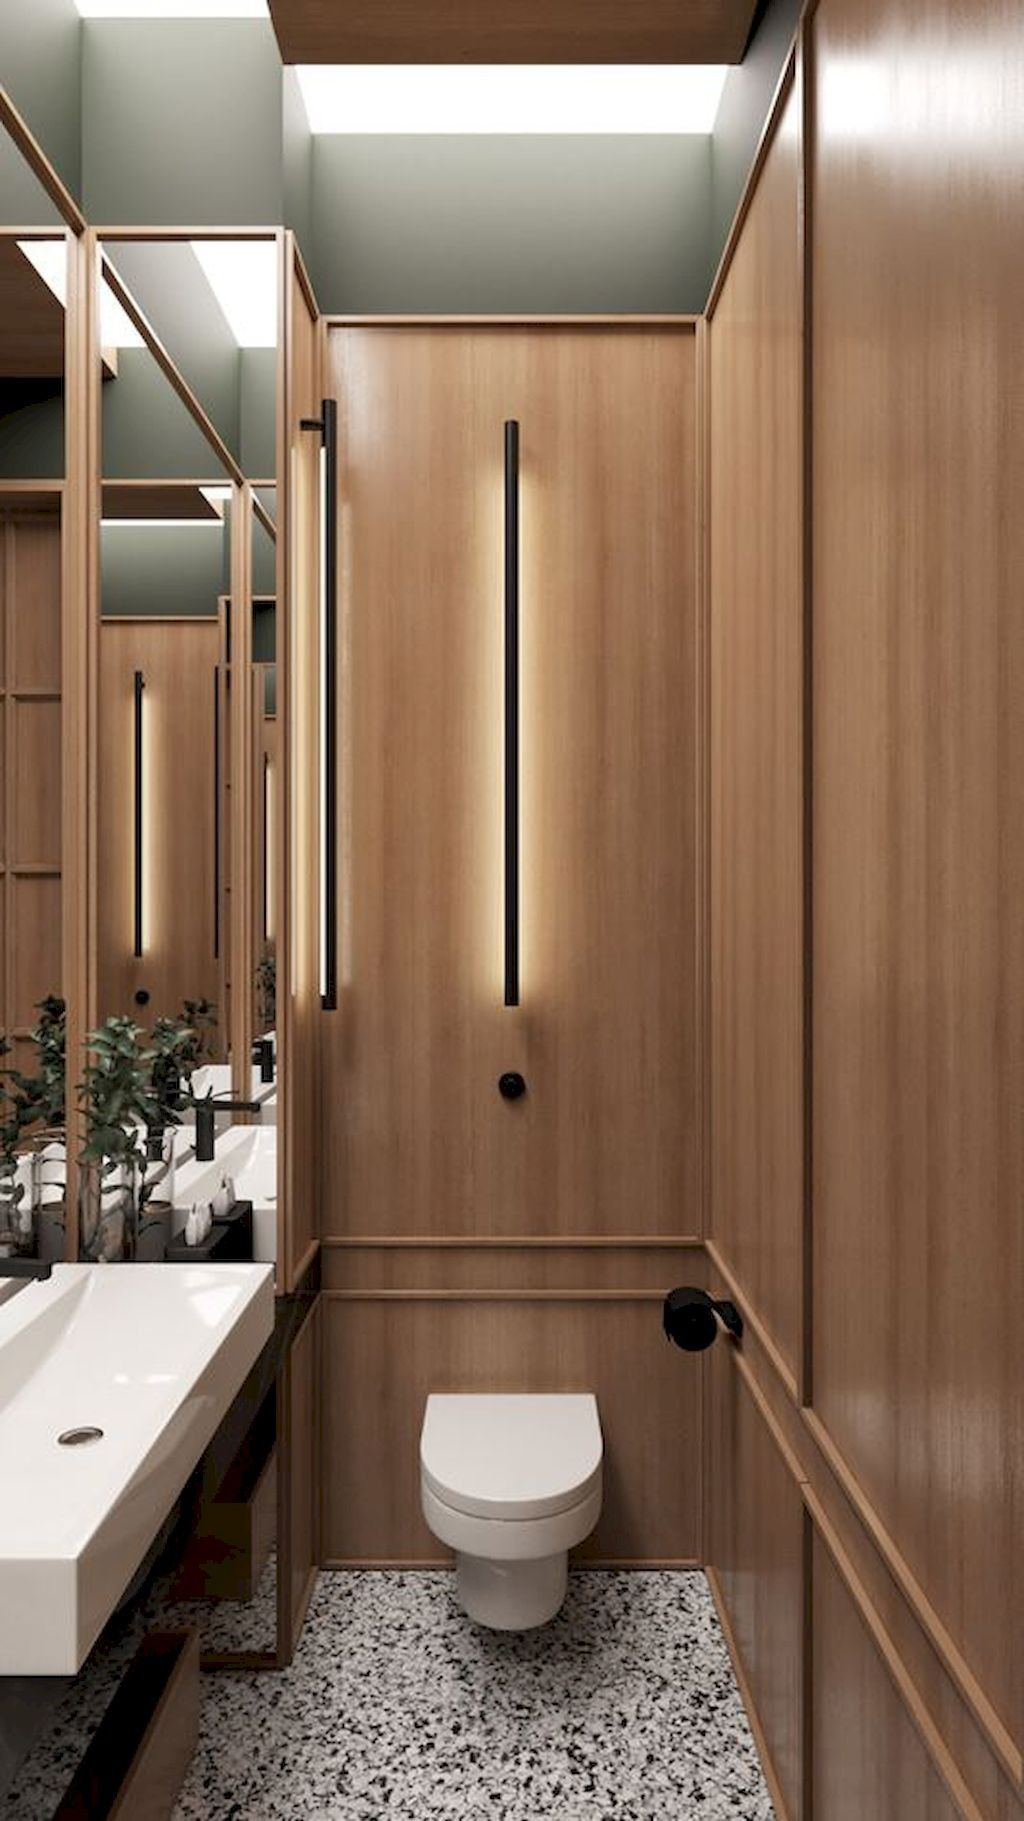 40+ Very Efficient Small Powder Room Design Ideas | Toilet ...